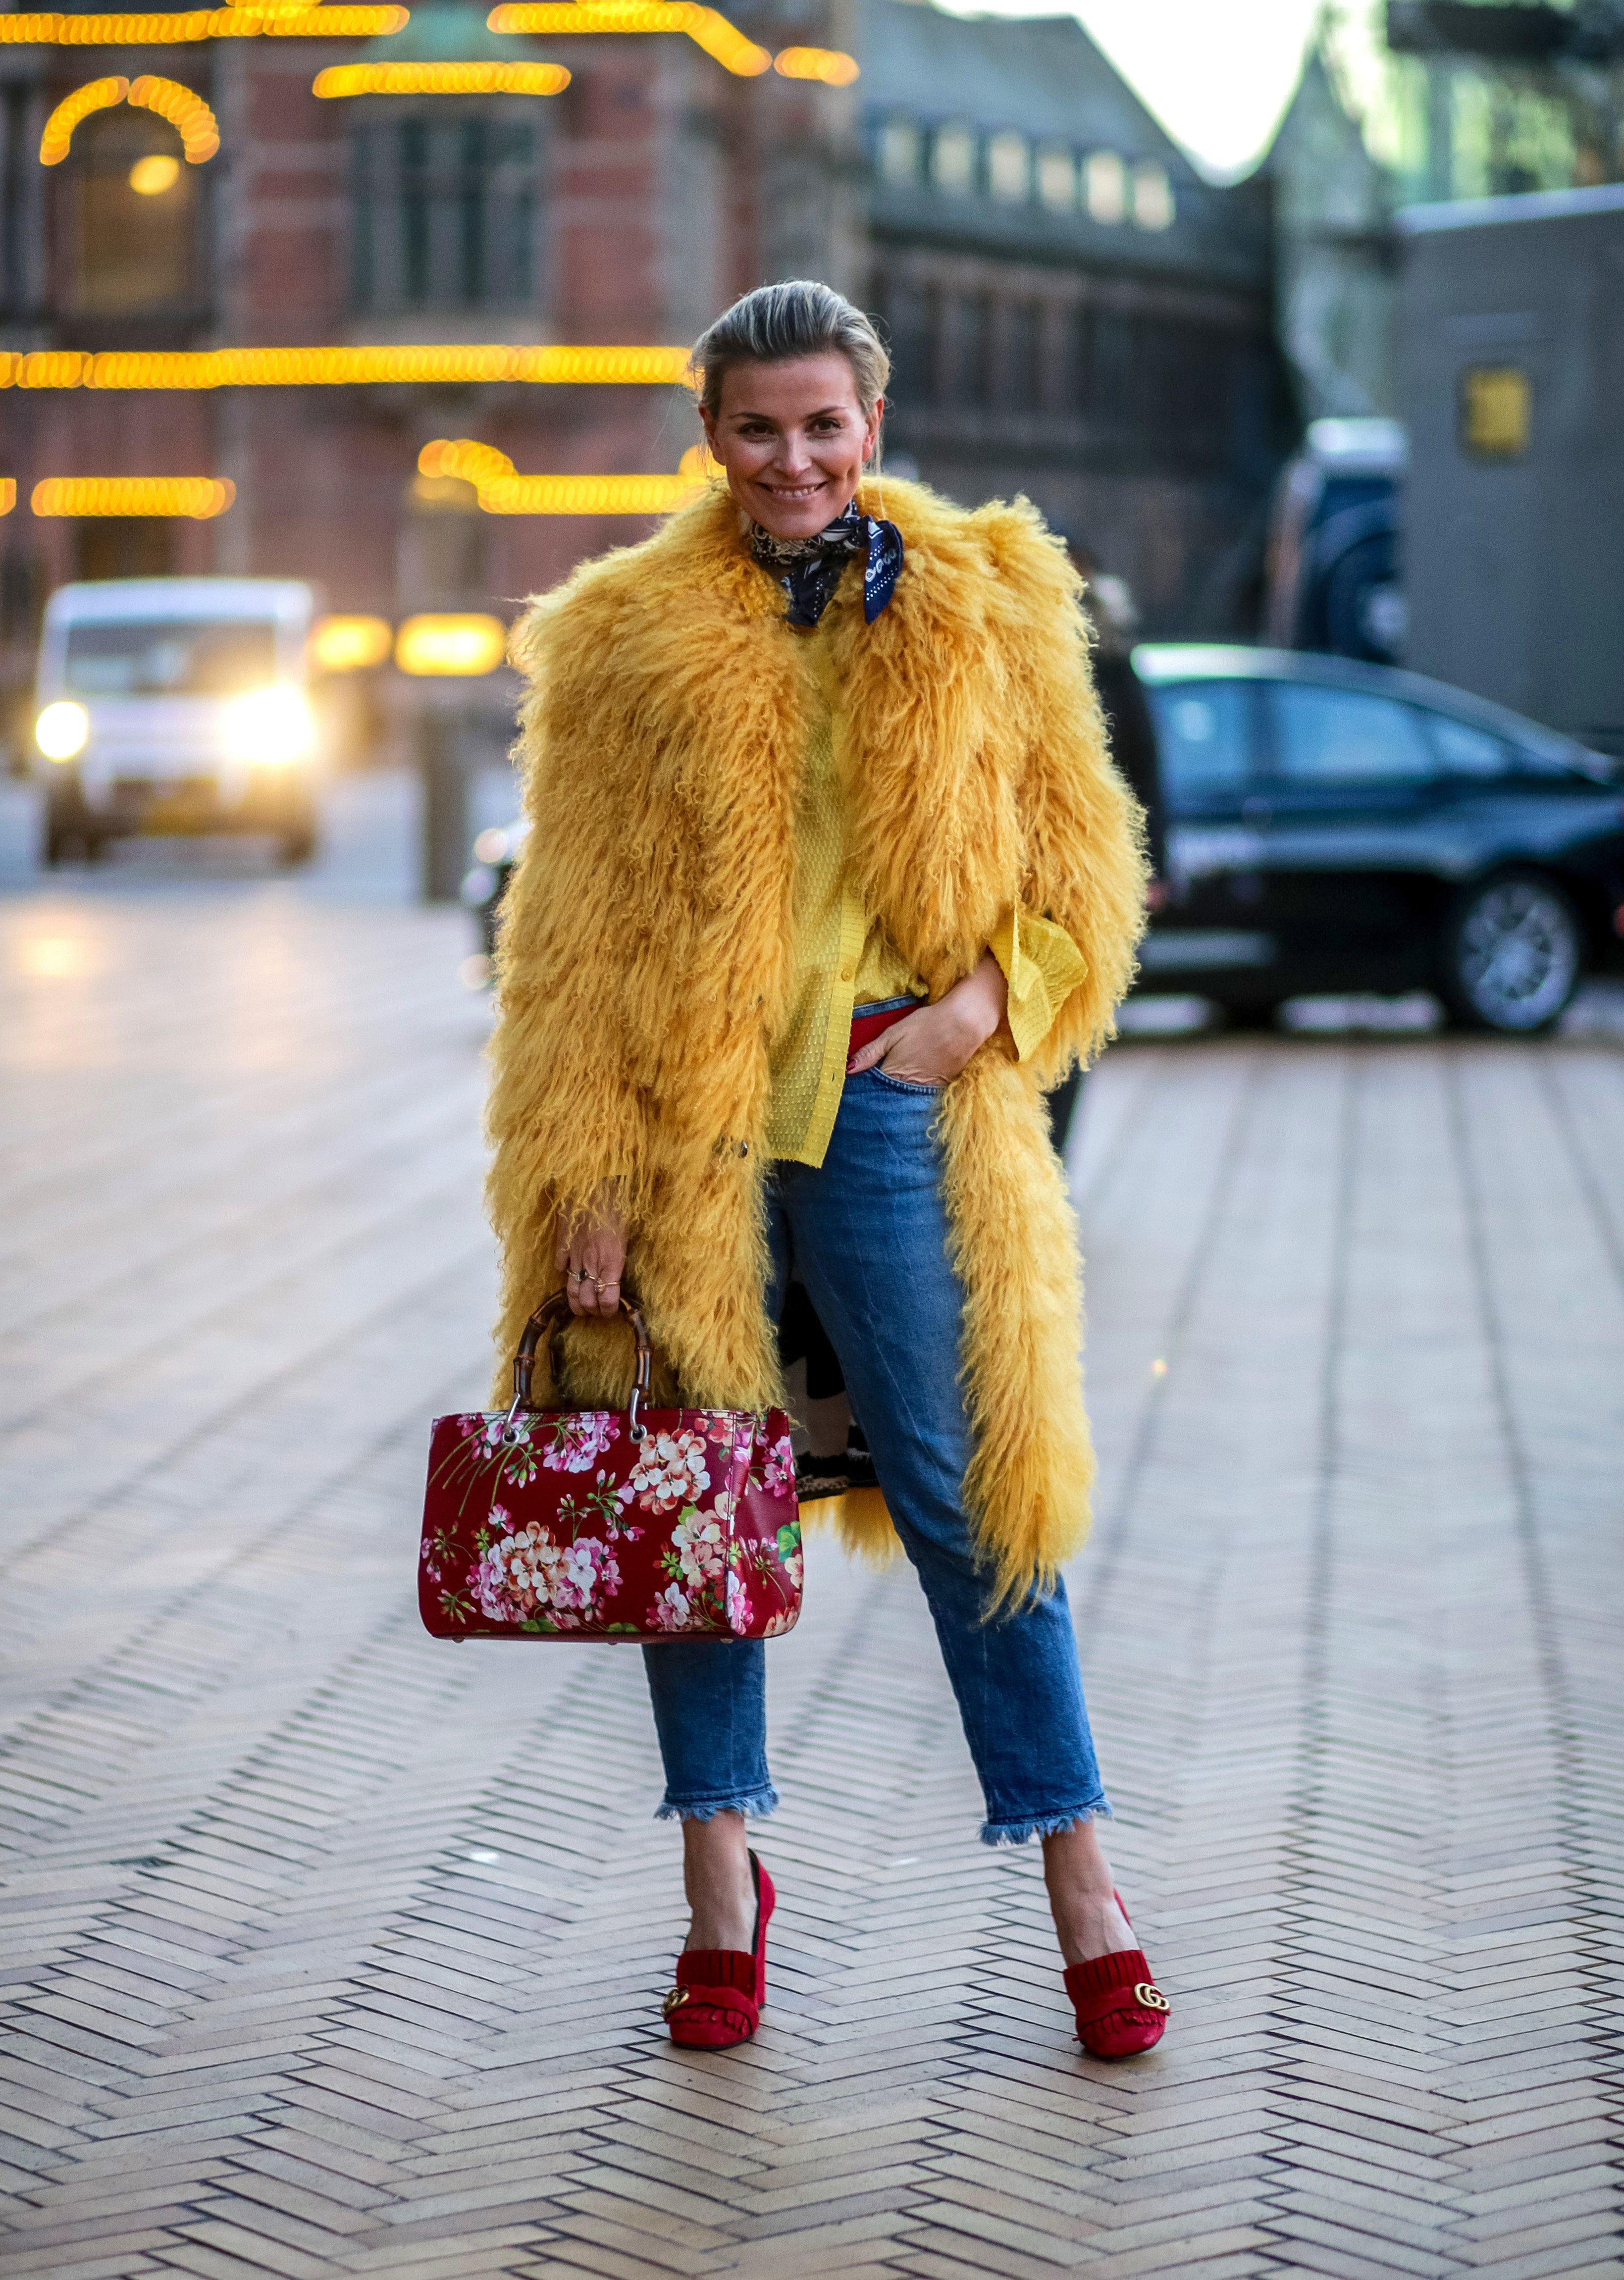 COPENHAGEN, DENMARK - FEBRUARY 03: Janka Polliani wearing Saks Potts coat, Gucci bag and shoes outside Lala Berlin during the Copenhagen Fashion Week Autumn/Winter 2016 on February 3, 2016 in Copenhagen, Denmark.  (Photo by Christian Vierig/Getty Images)